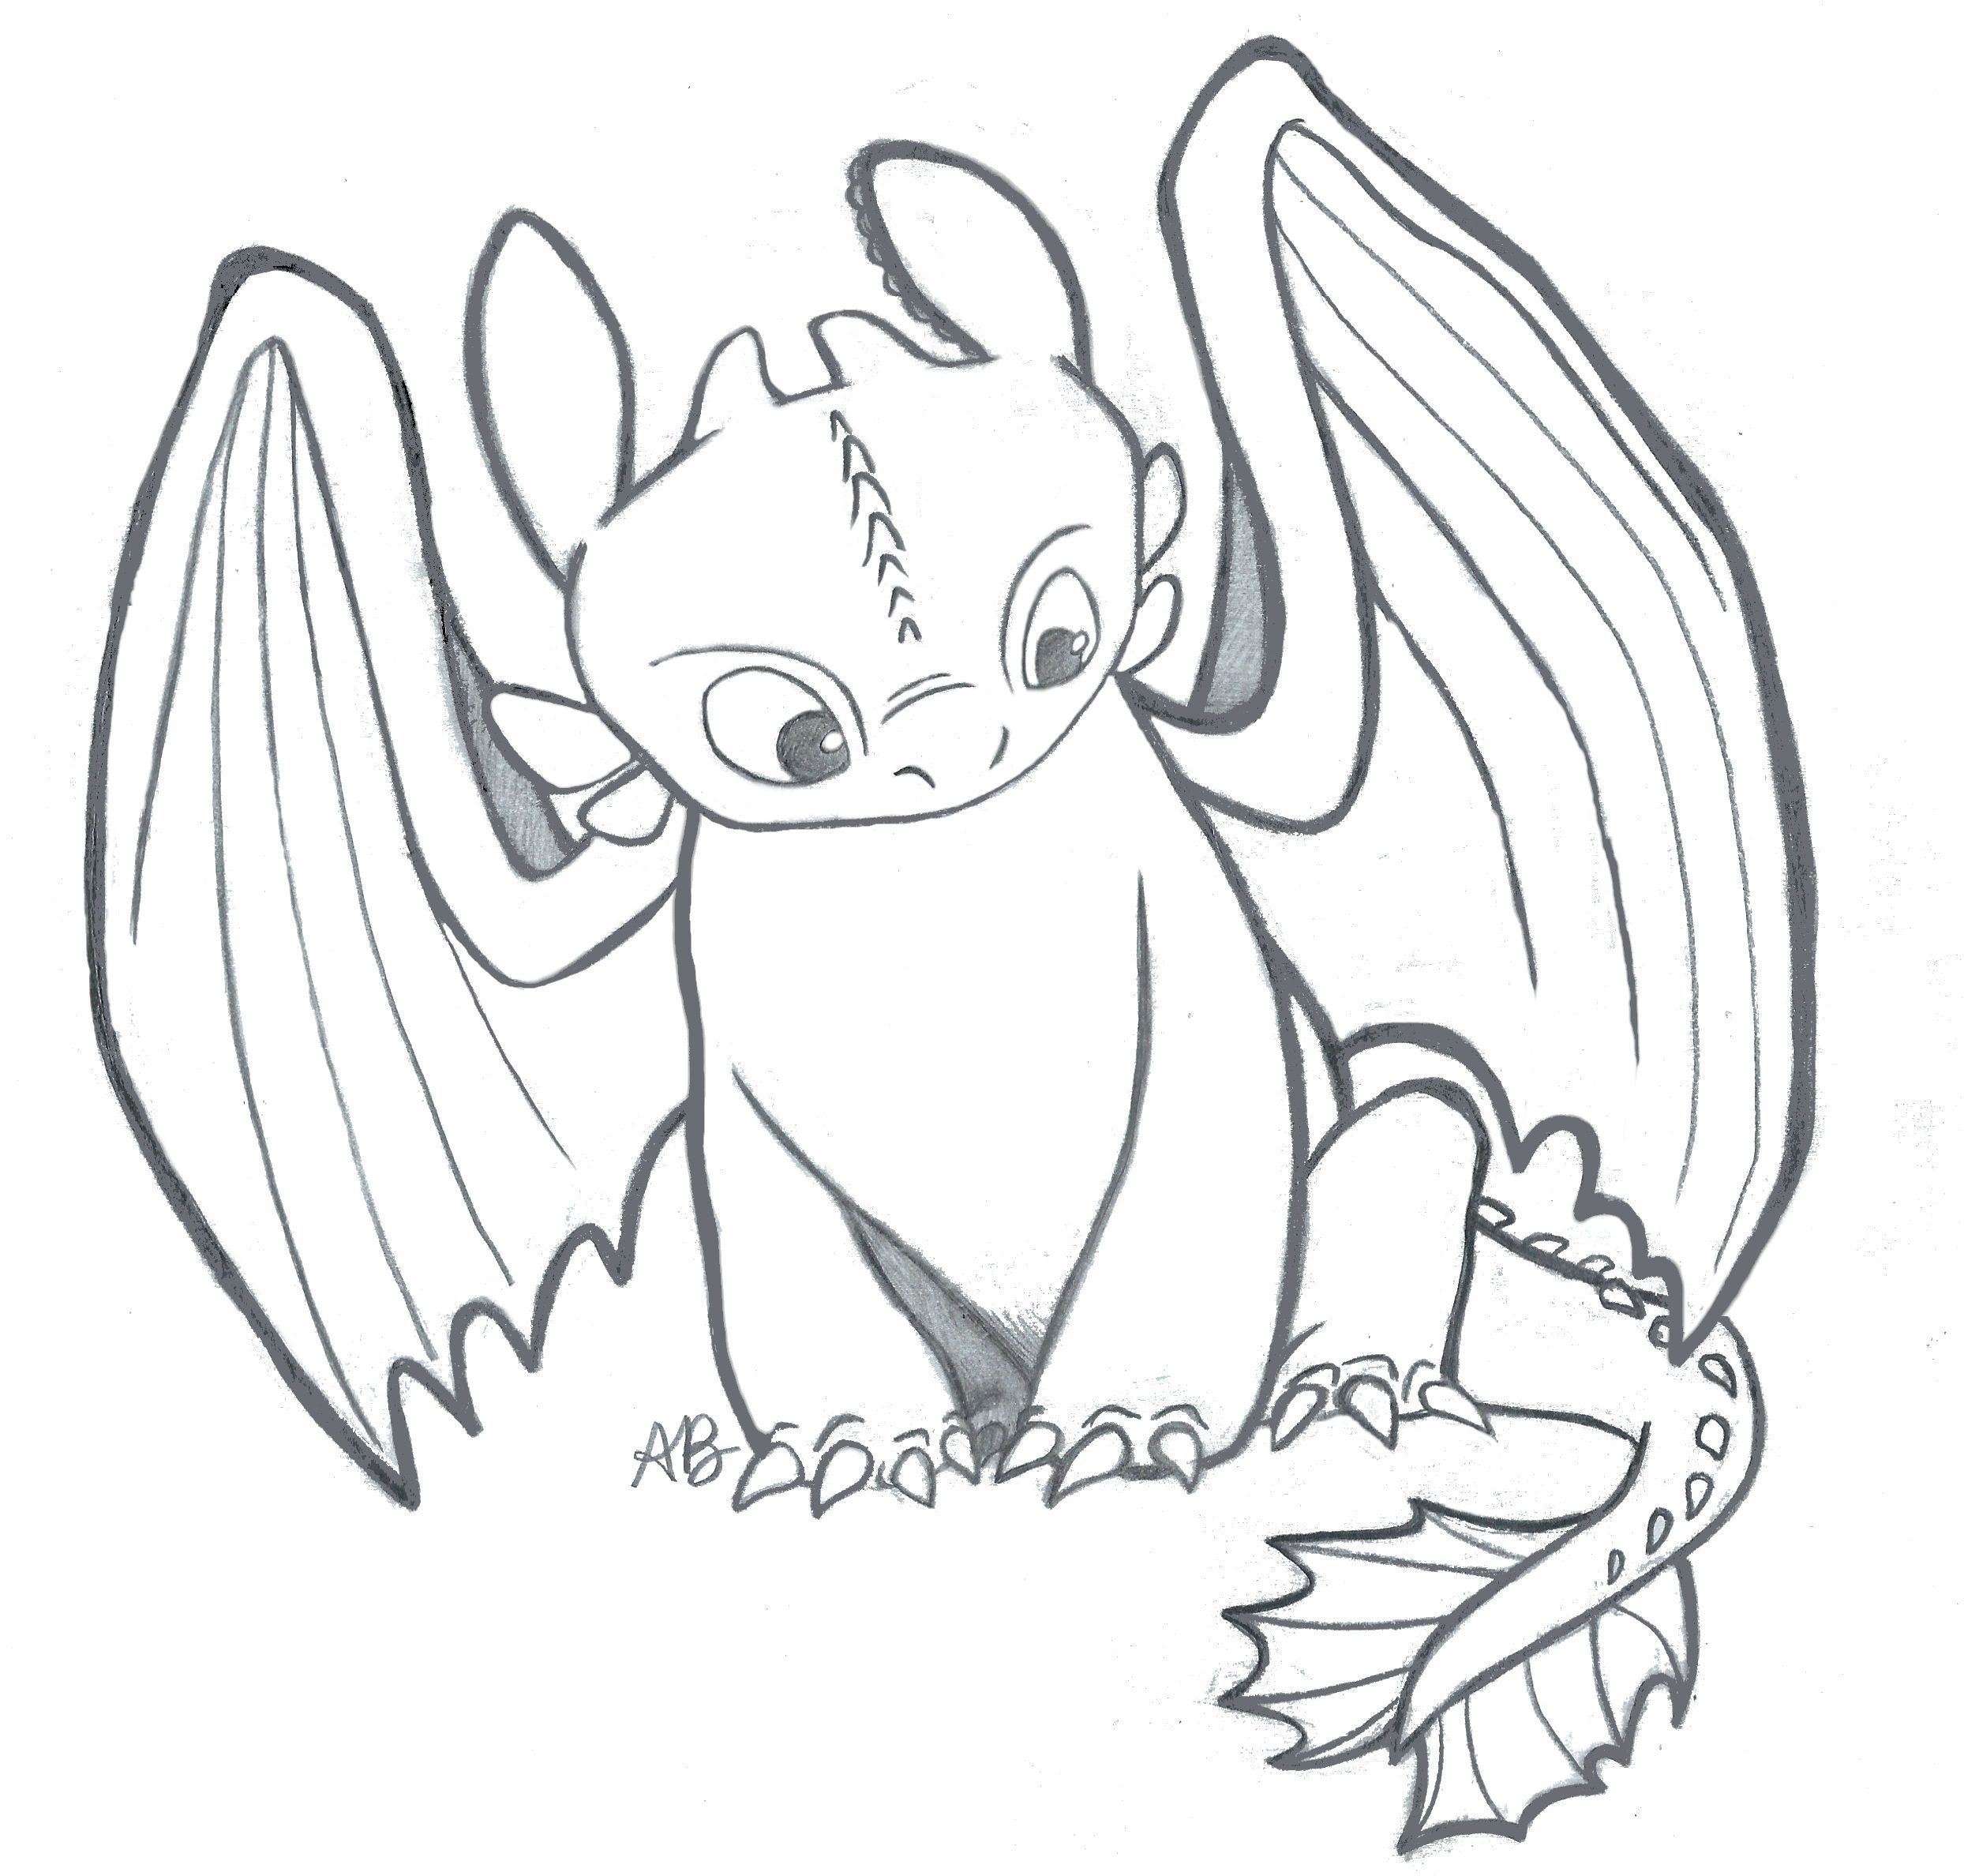 Dragon Draw How To Draw Toothless From How To Train Your Dragon 2 In Easy Steps Dragon Sketch Dragon Coloring Page Dragon Drawing